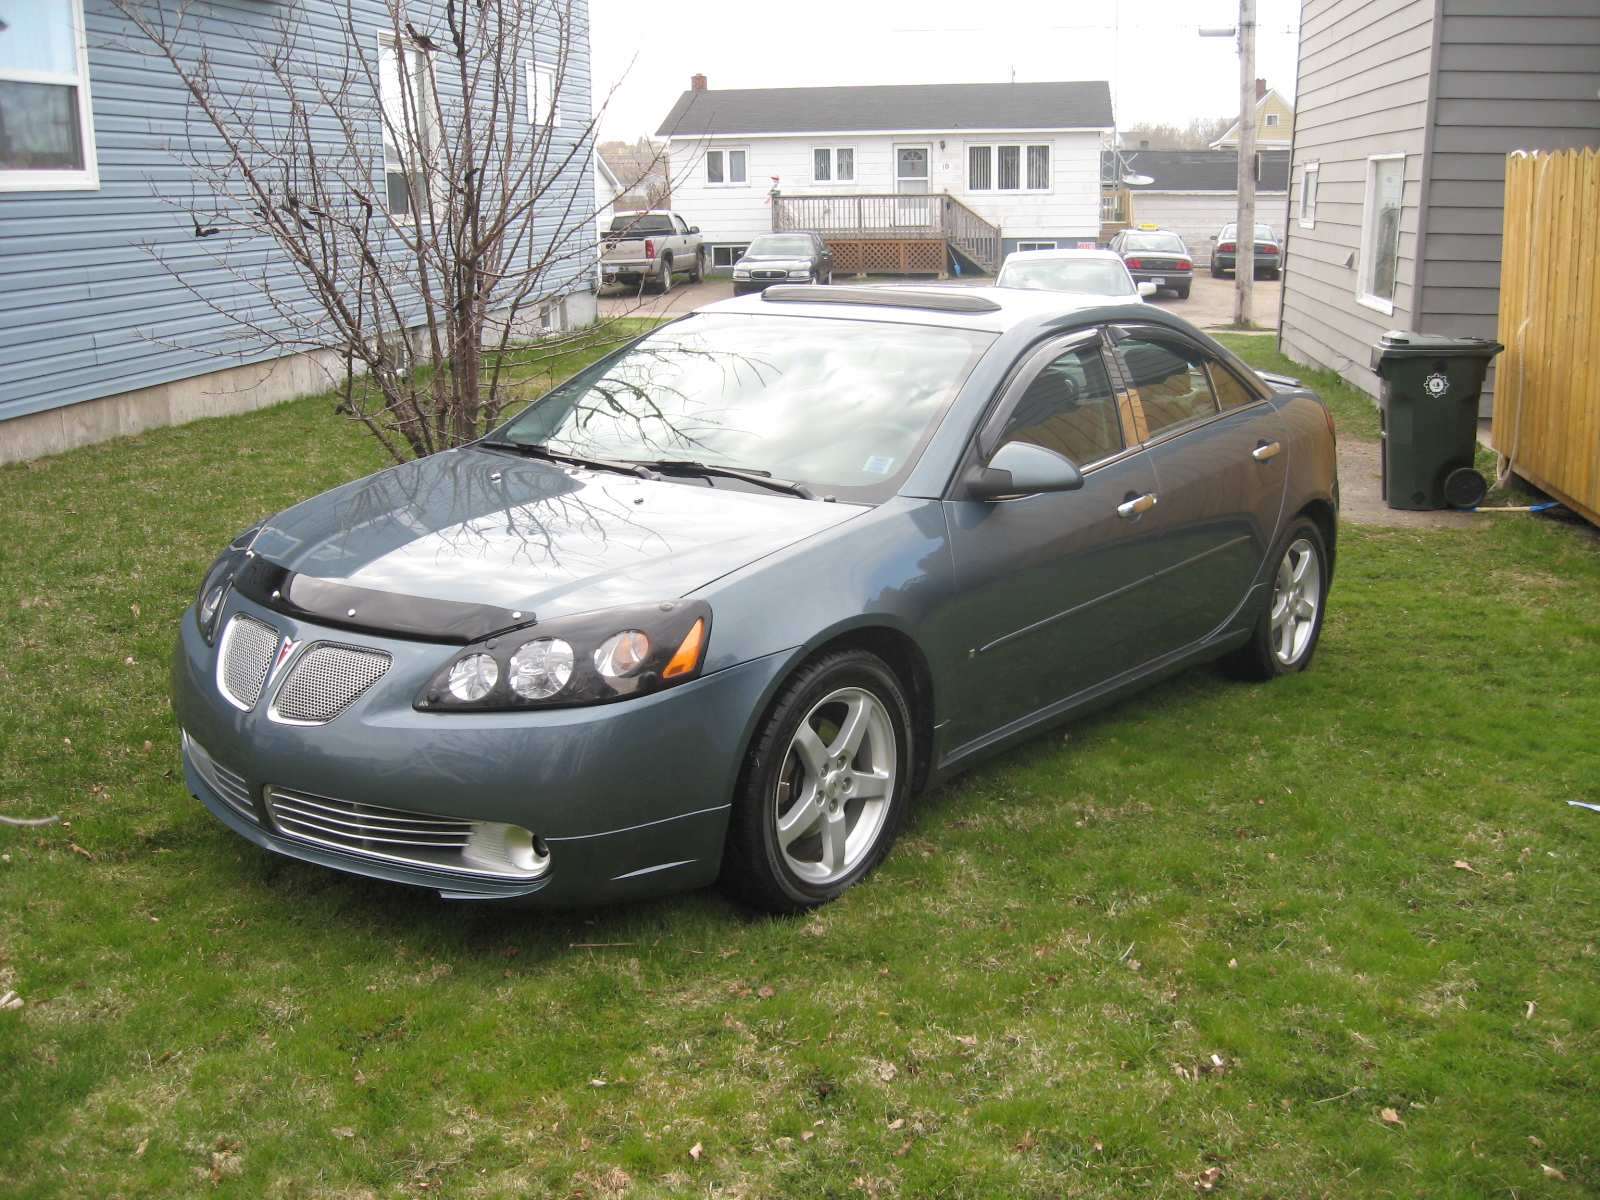 2006 pontiac g6 gt picture exterior. Black Bedroom Furniture Sets. Home Design Ideas